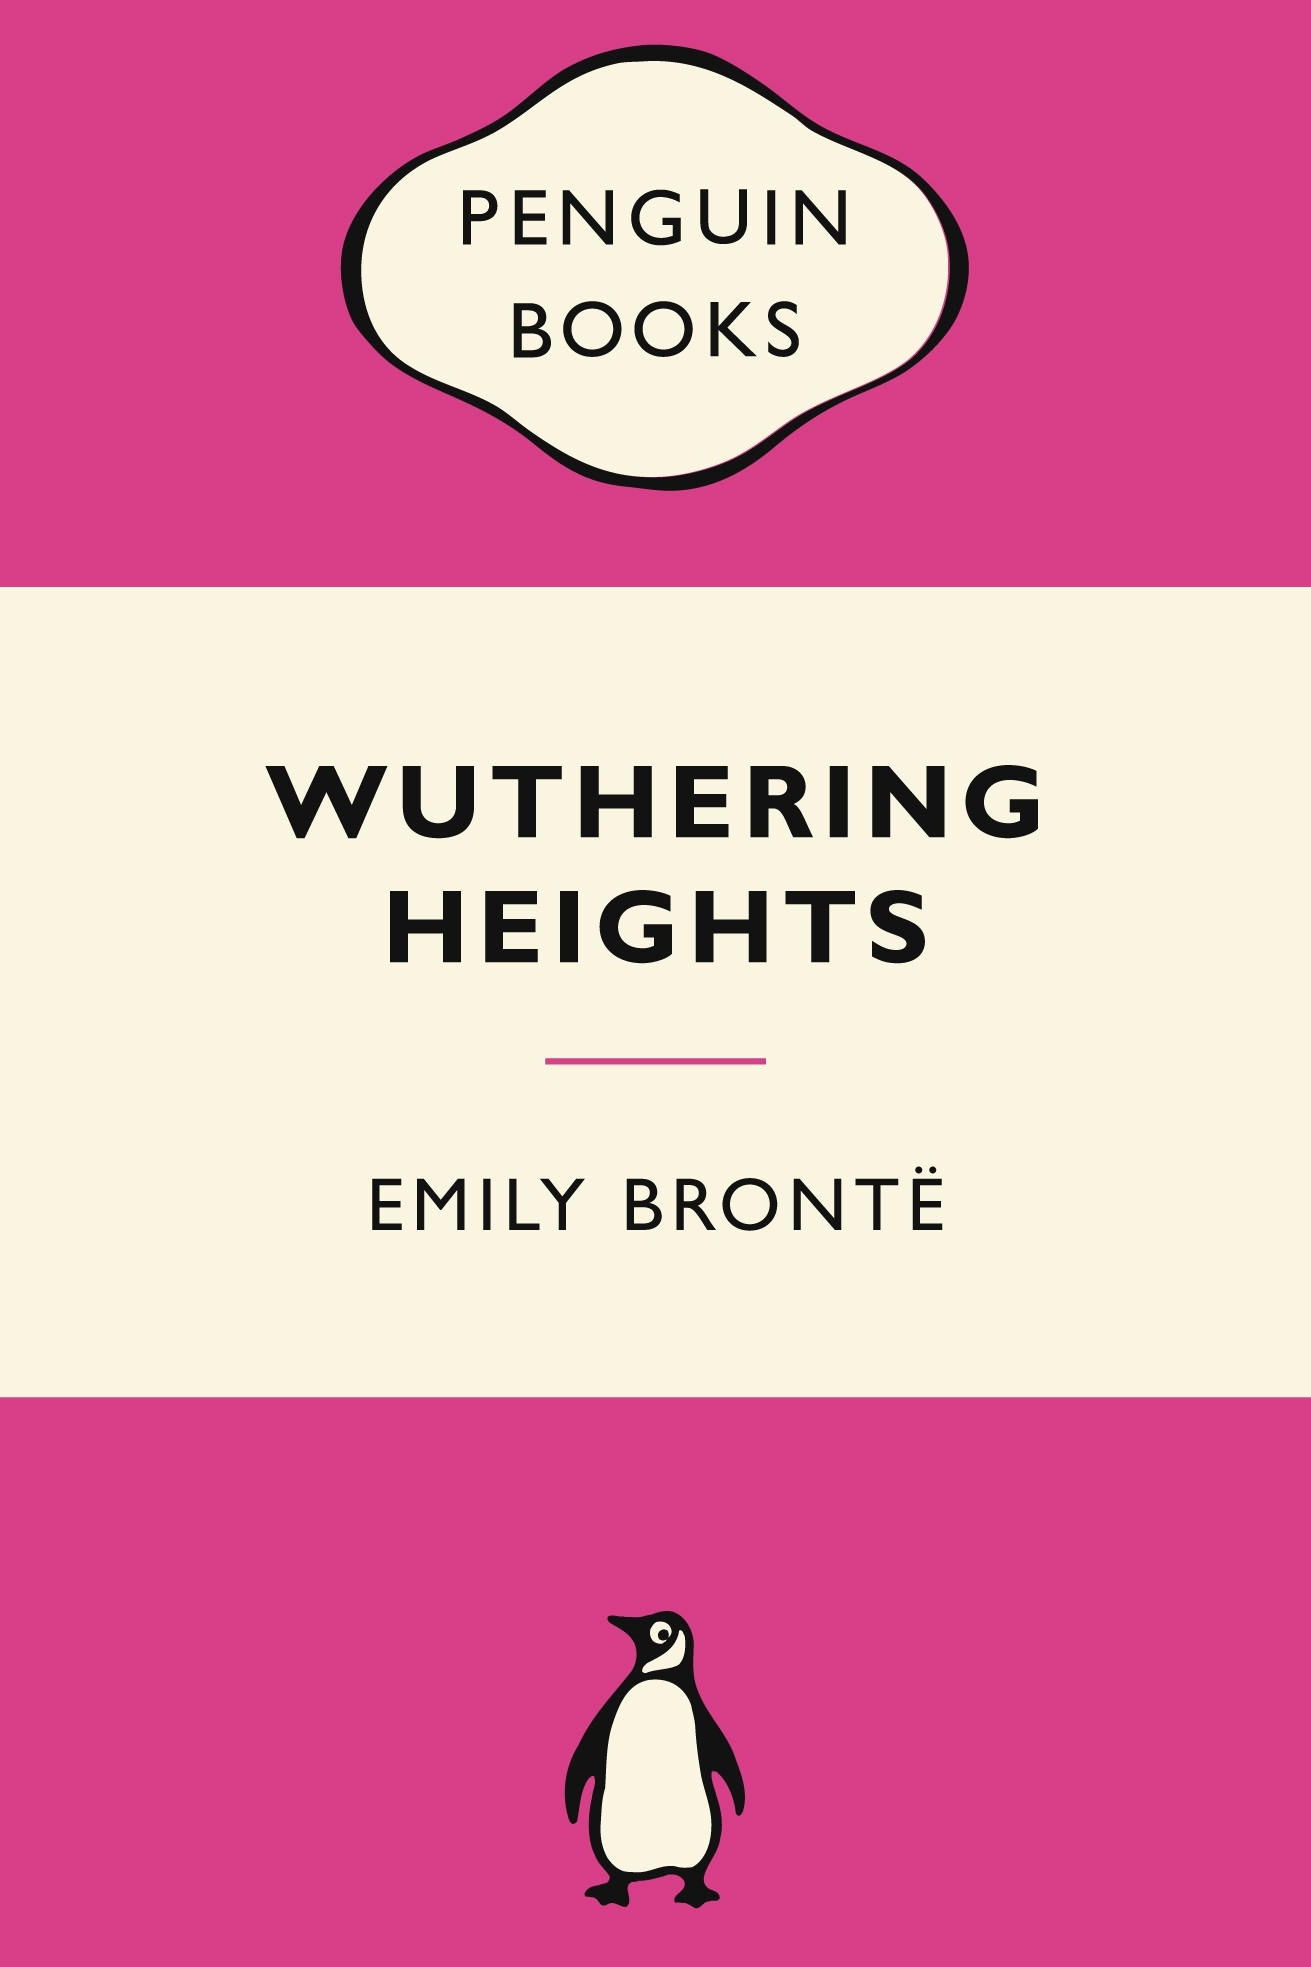 Wuthering Heights by Emily Brontë   Emily Brontë's only novel, Wuthering Heights is a dark, gothic classic. It tells of an intense and almost demonic love story between two characters, one of whom is bent on avenging the wrongs inflicted on him during childhood. Although this book is some people's favourite, it wasn't for me at all. Overall I found it uncomfortable and dissuading to read about such dark characters.  Recommed?  No  Unless you're working your way through all the Brontë novels